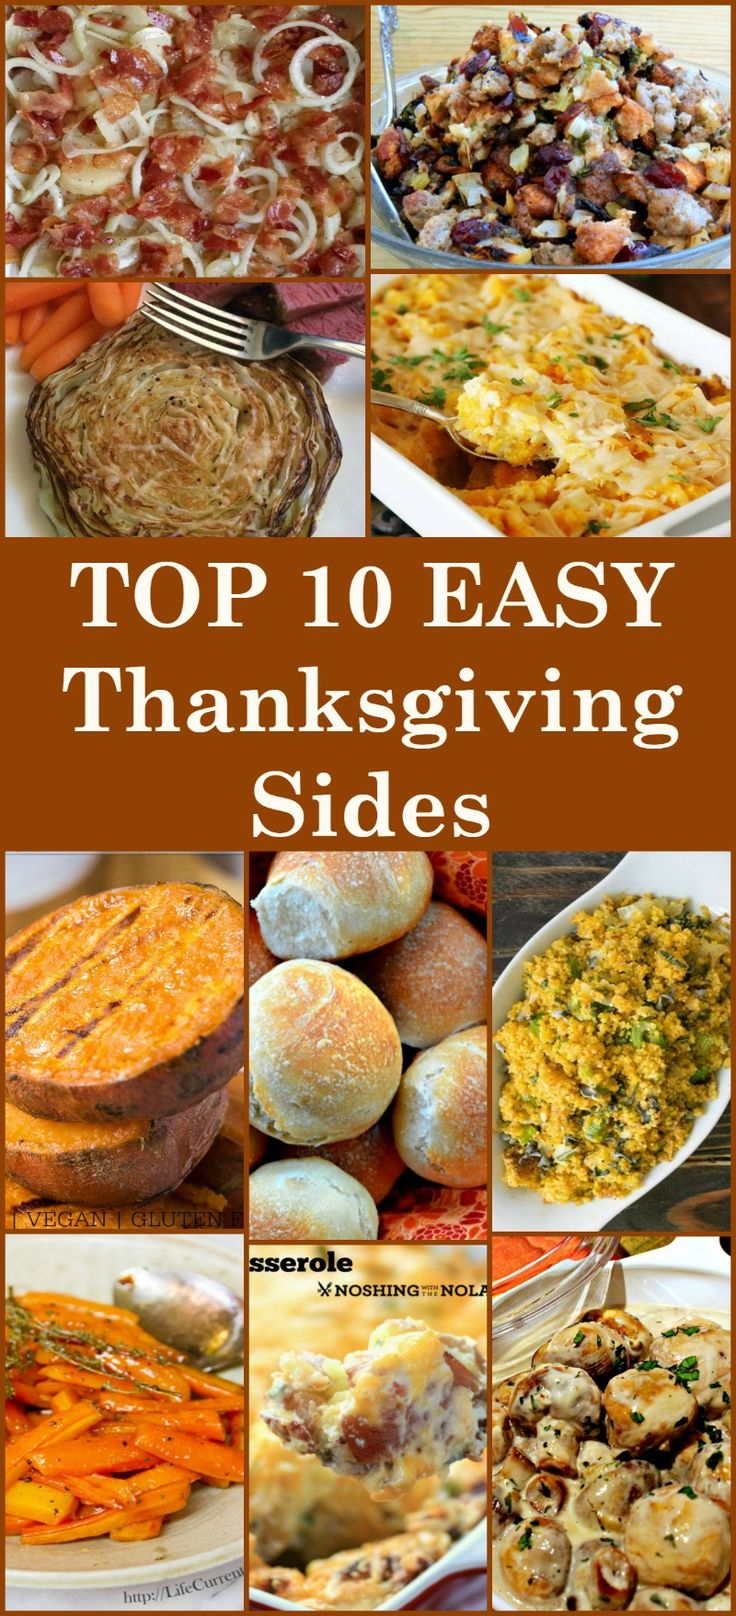 Here's a selection of the BEST TOP 10 Side Dishes from talented bloggers. All tried and true recipes and fit for your very special Thanksgiving table.  Easy and delicious that's for sure! Possible to Make ahead too!